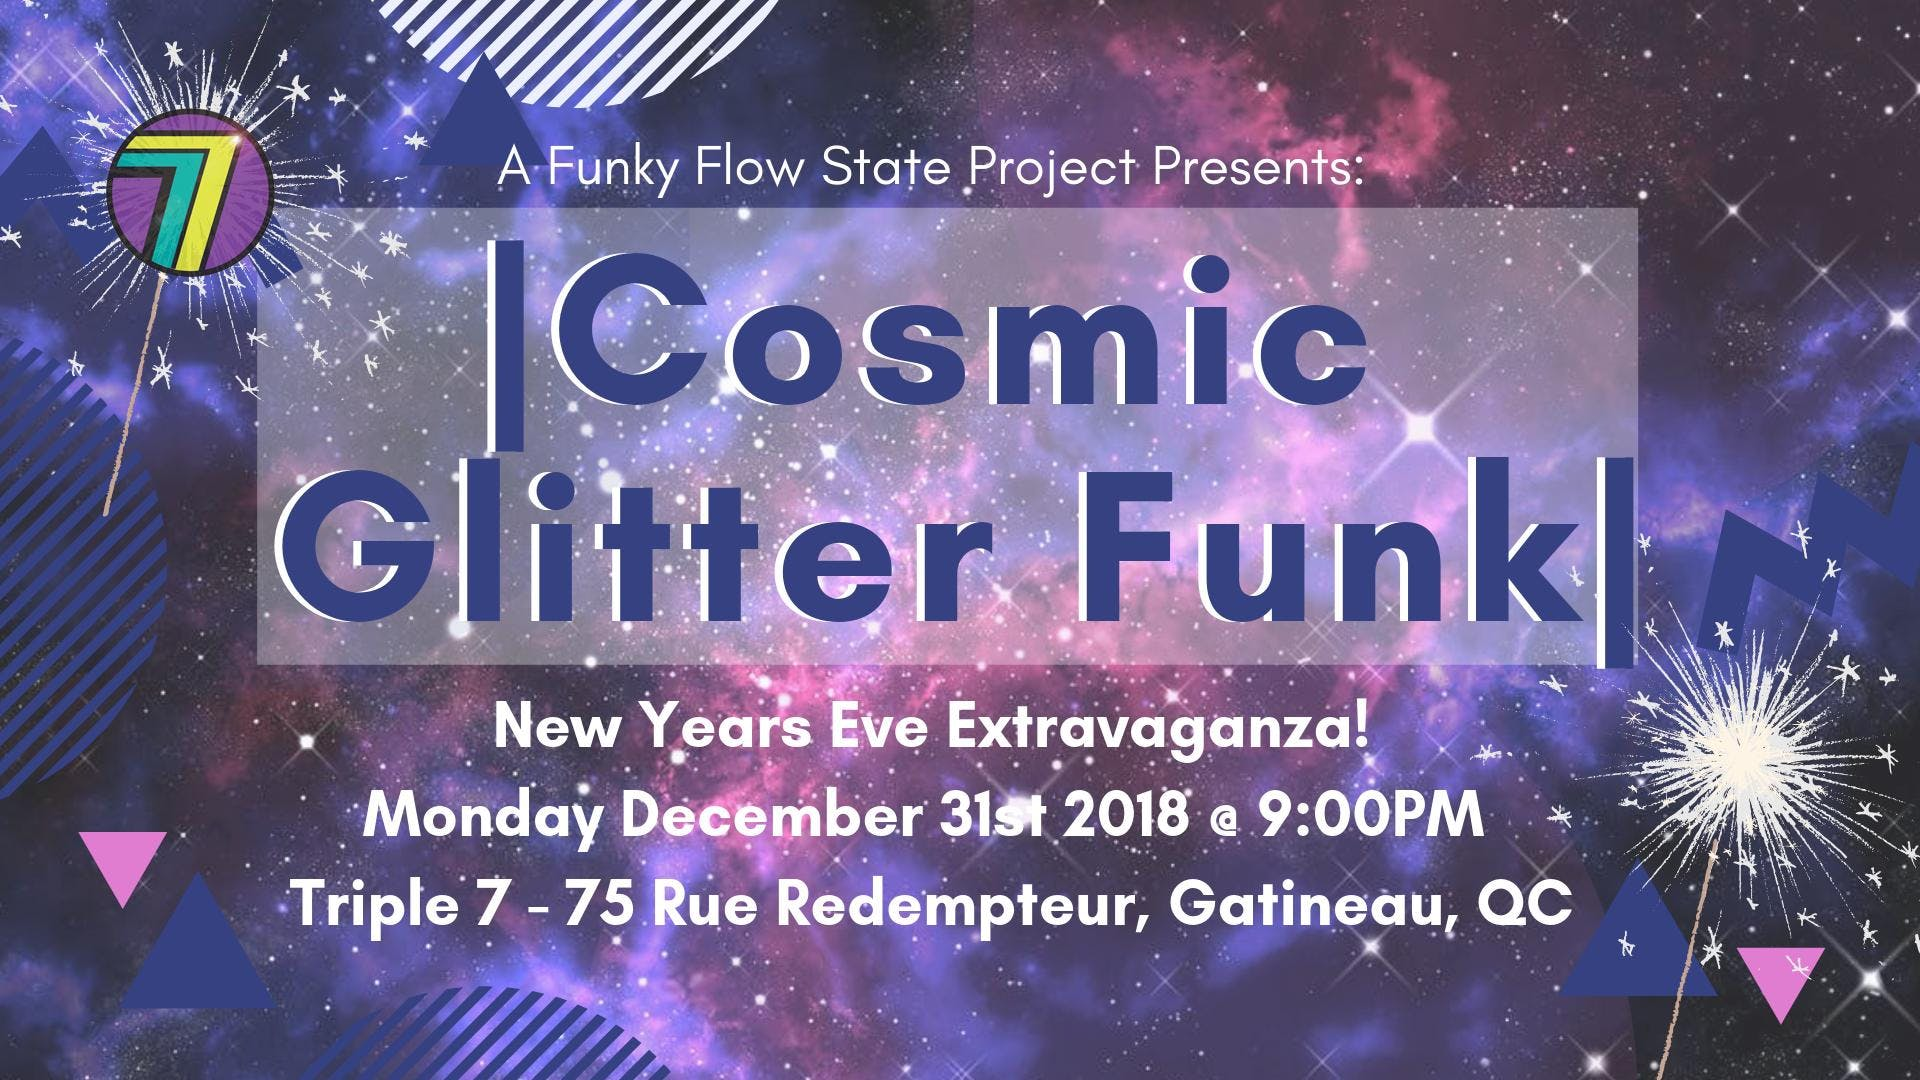 COSMIC GLITTER FUNK - A New Years Eve Extravaganza